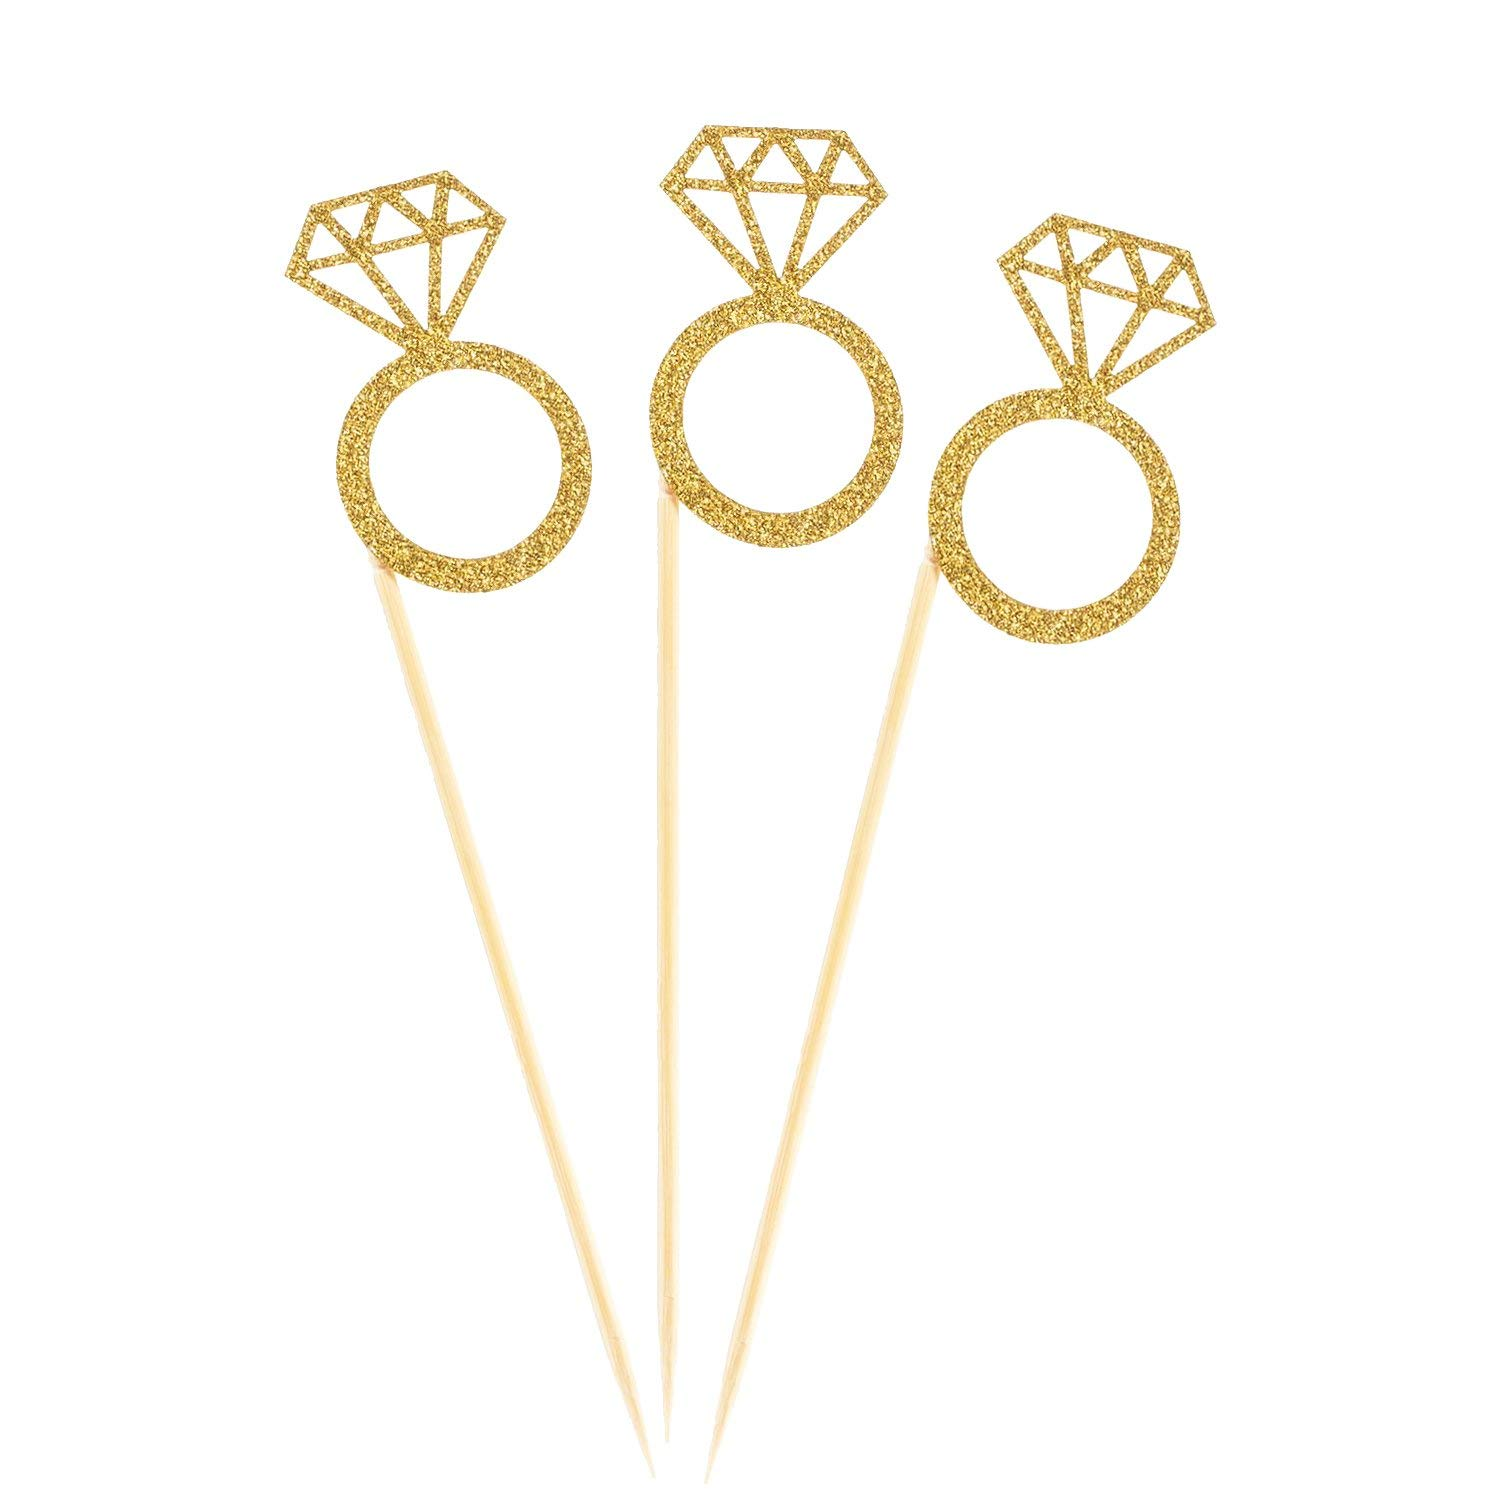 50 Pack Cupcake Toppers Gold Glitter Mini Diamond Ring Cakes Toppers Marriage Engagement Anniversary Birthday Valentines Party